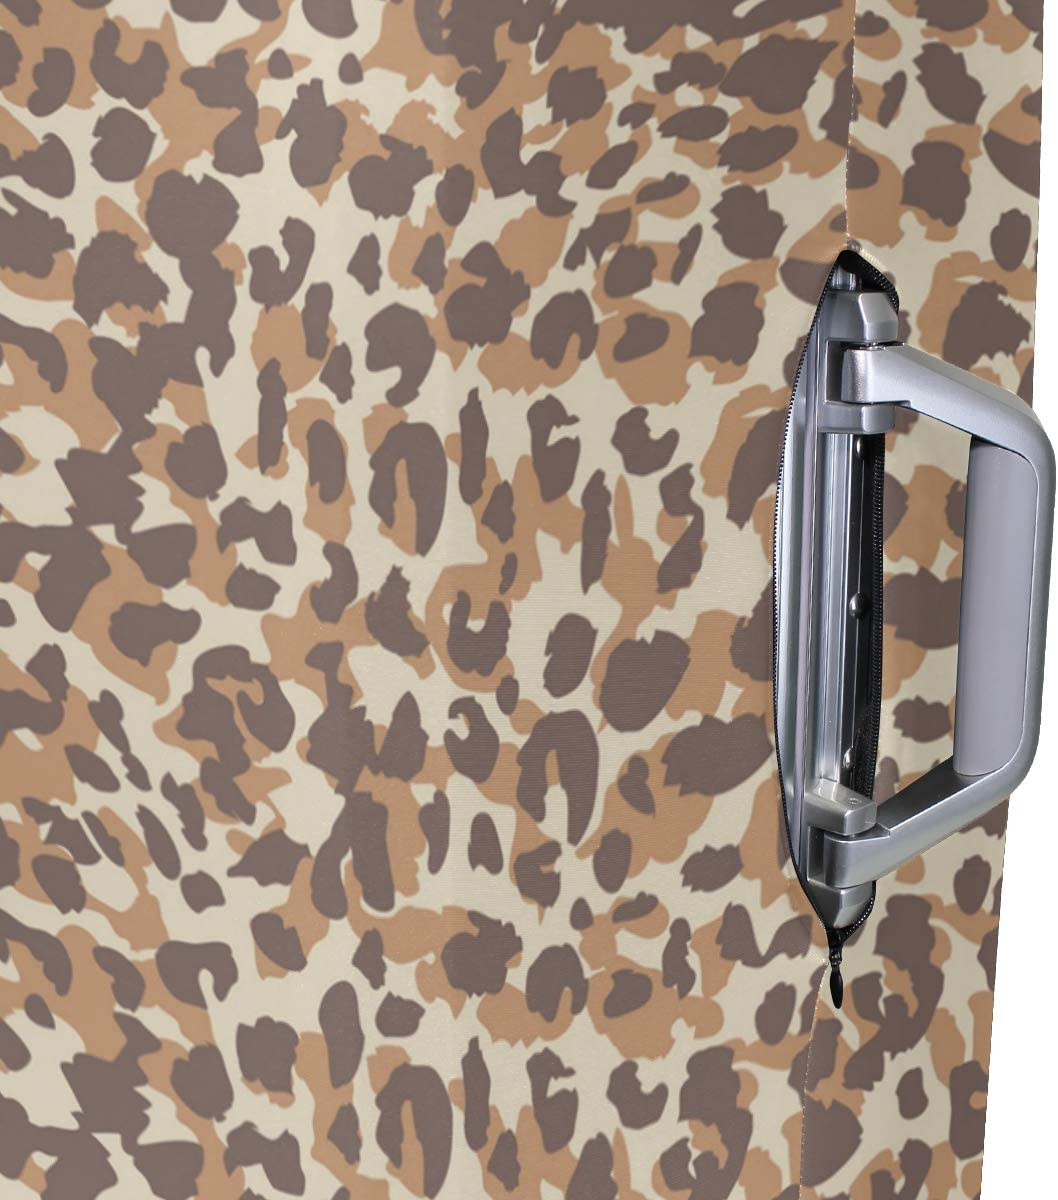 Brown Leopard Print Fabric Traveler Lightweight Rotating Luggage Protector Case Can Carry With You Can Expand Travel Bag Trolley Rolling Luggage Protector Case